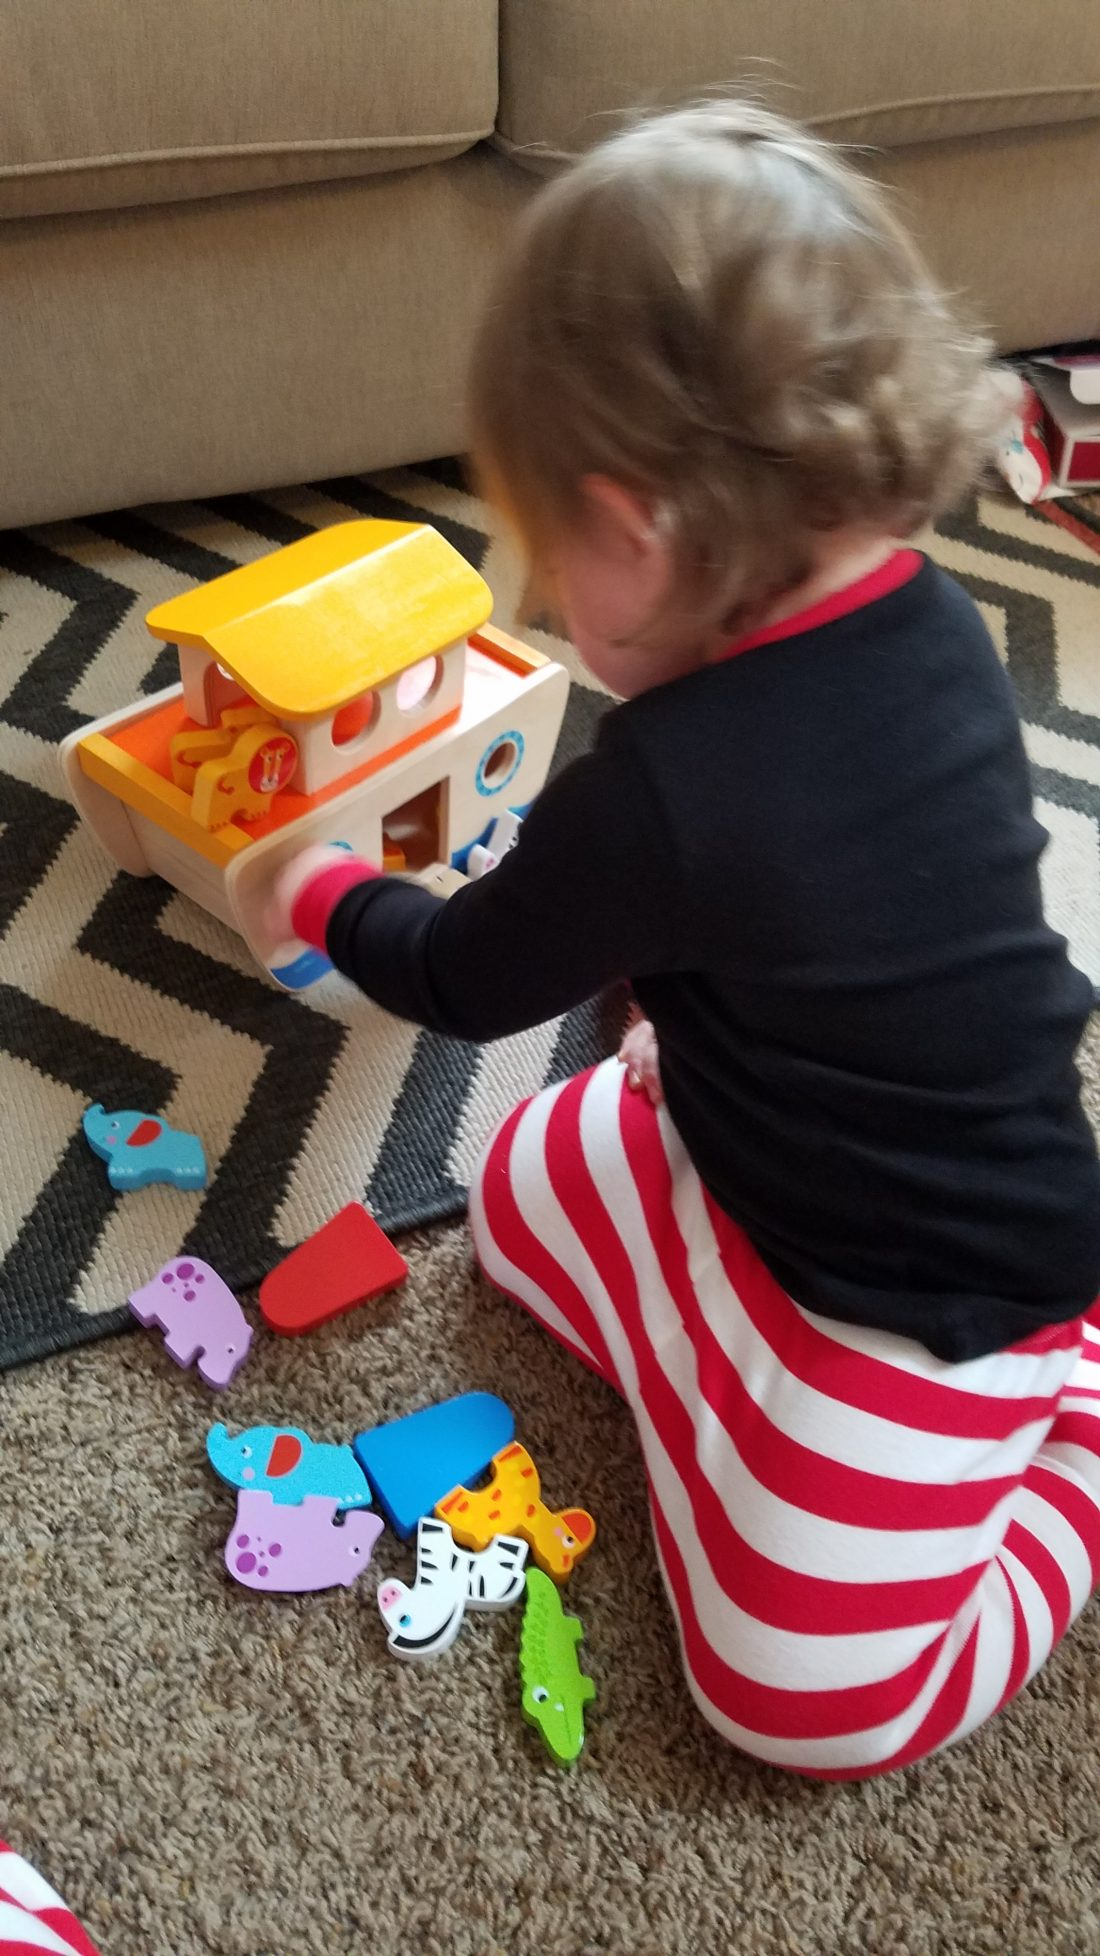 Cubbie Lee Toys are perfect for Valentines Day and everyday